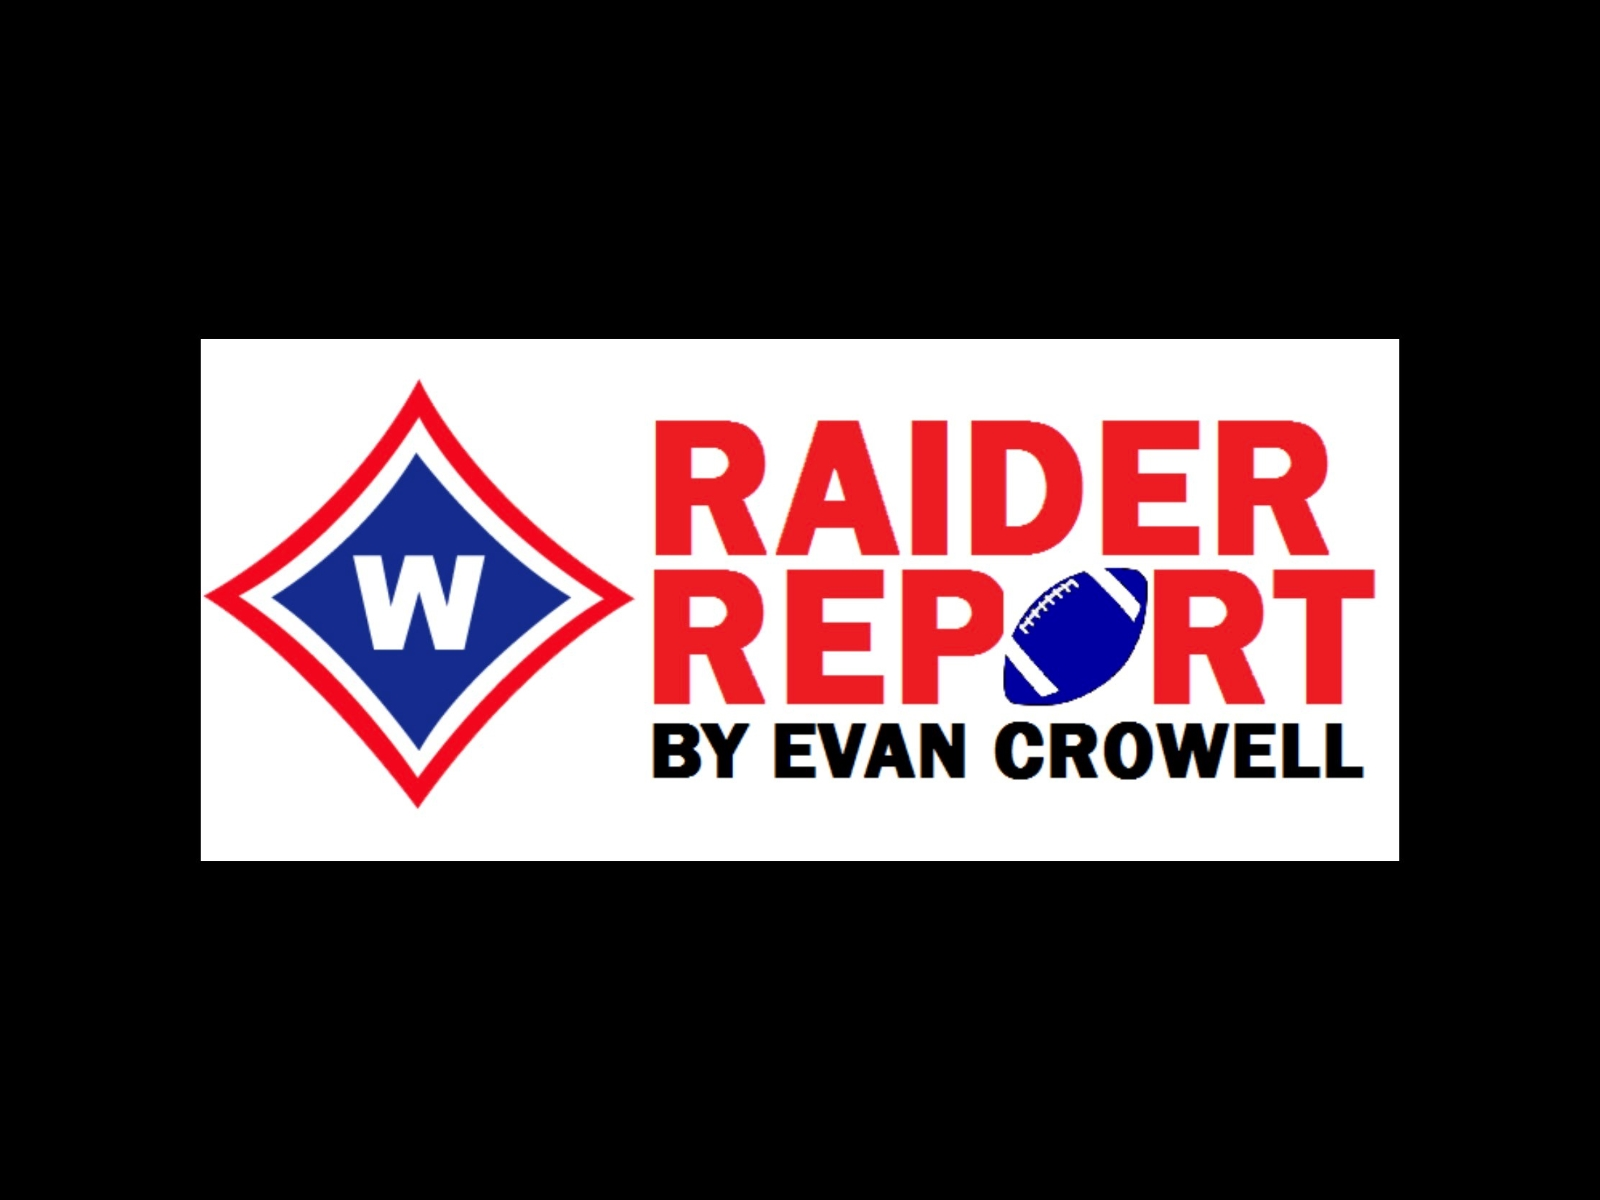 Run Raiders Run! Raiders Use Potent Ground Attack to Defeat the Greyhounds